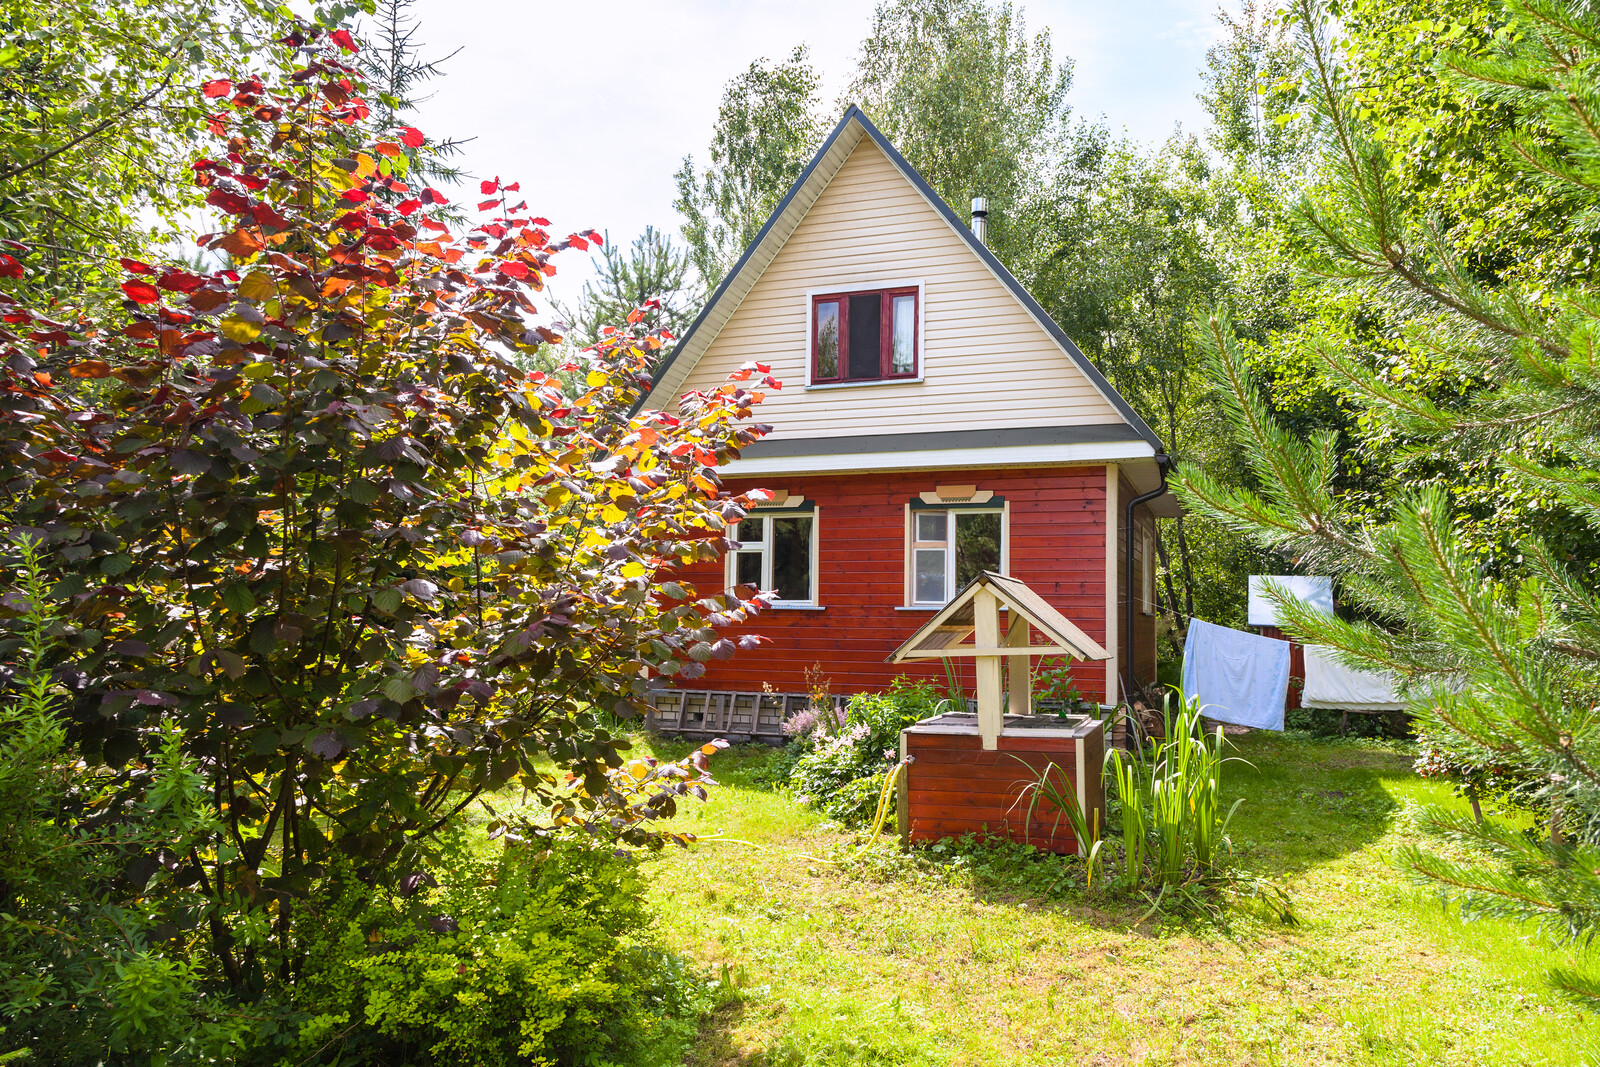 Cottage with Unkempt Lawn and overgrown trees, with laundry drying on the line.